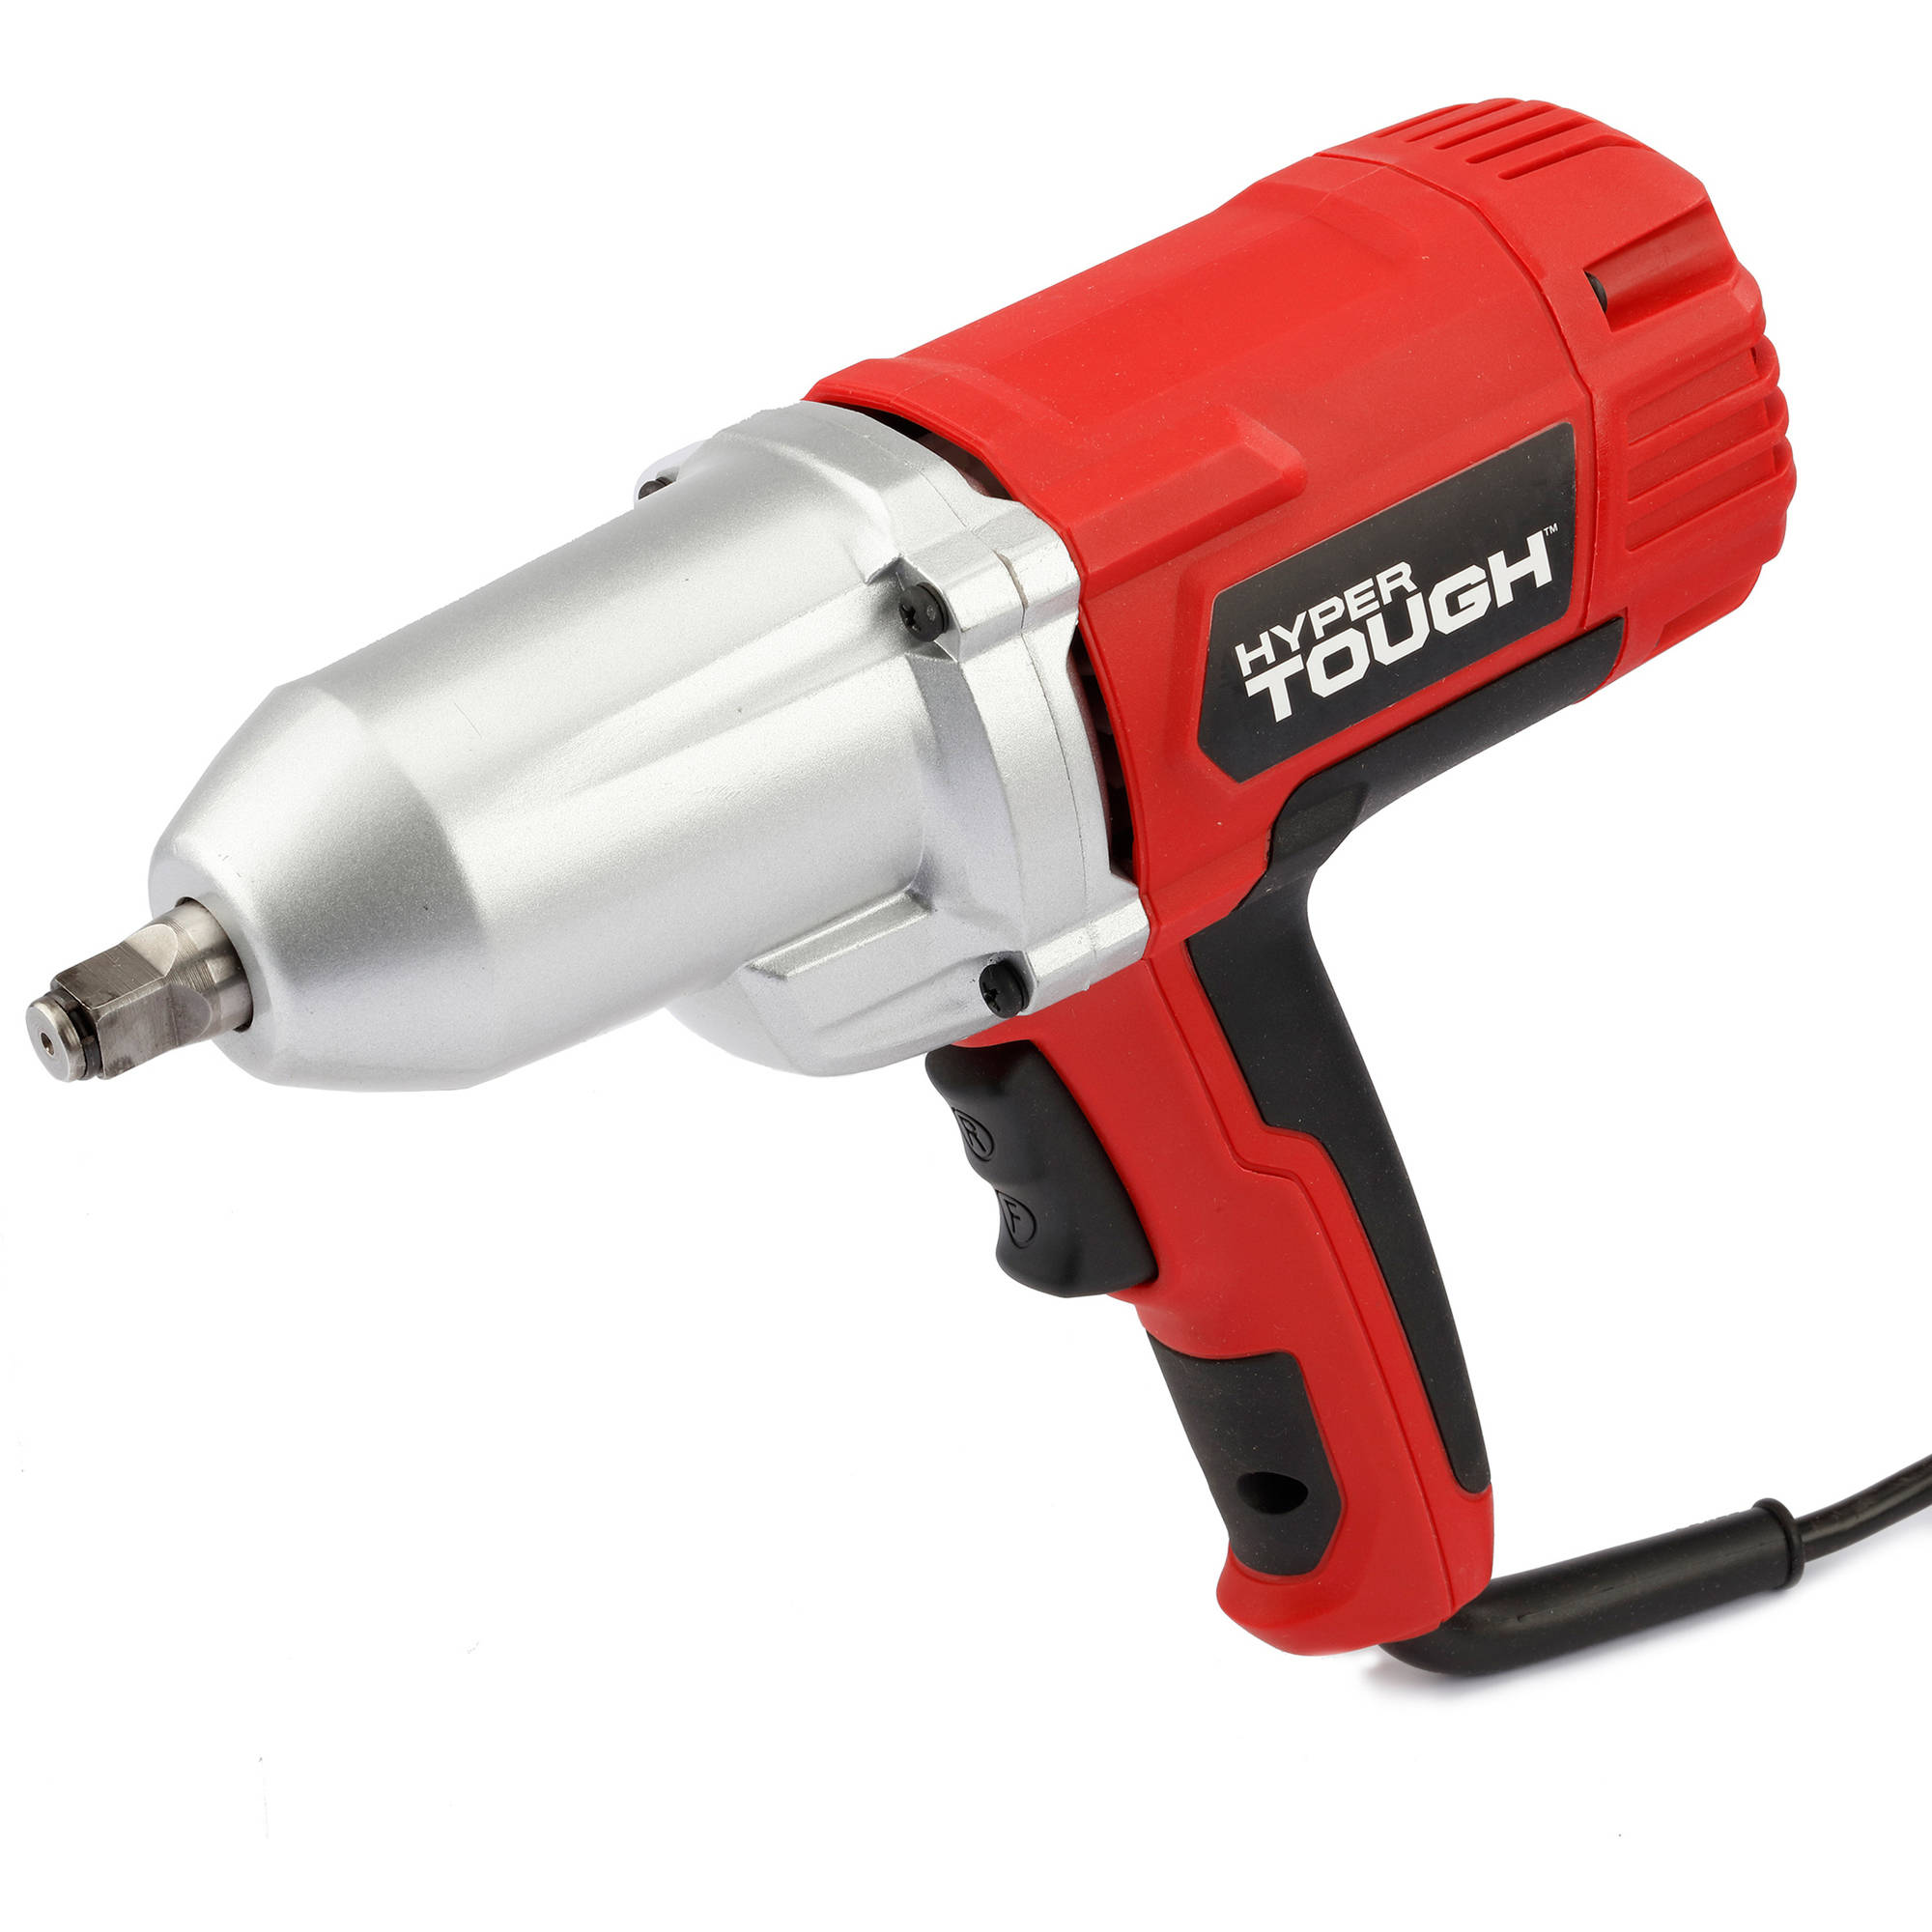 "Hyper Tough 6901.1 7.5-Amp 1/2"" Corded Impact Wrench"